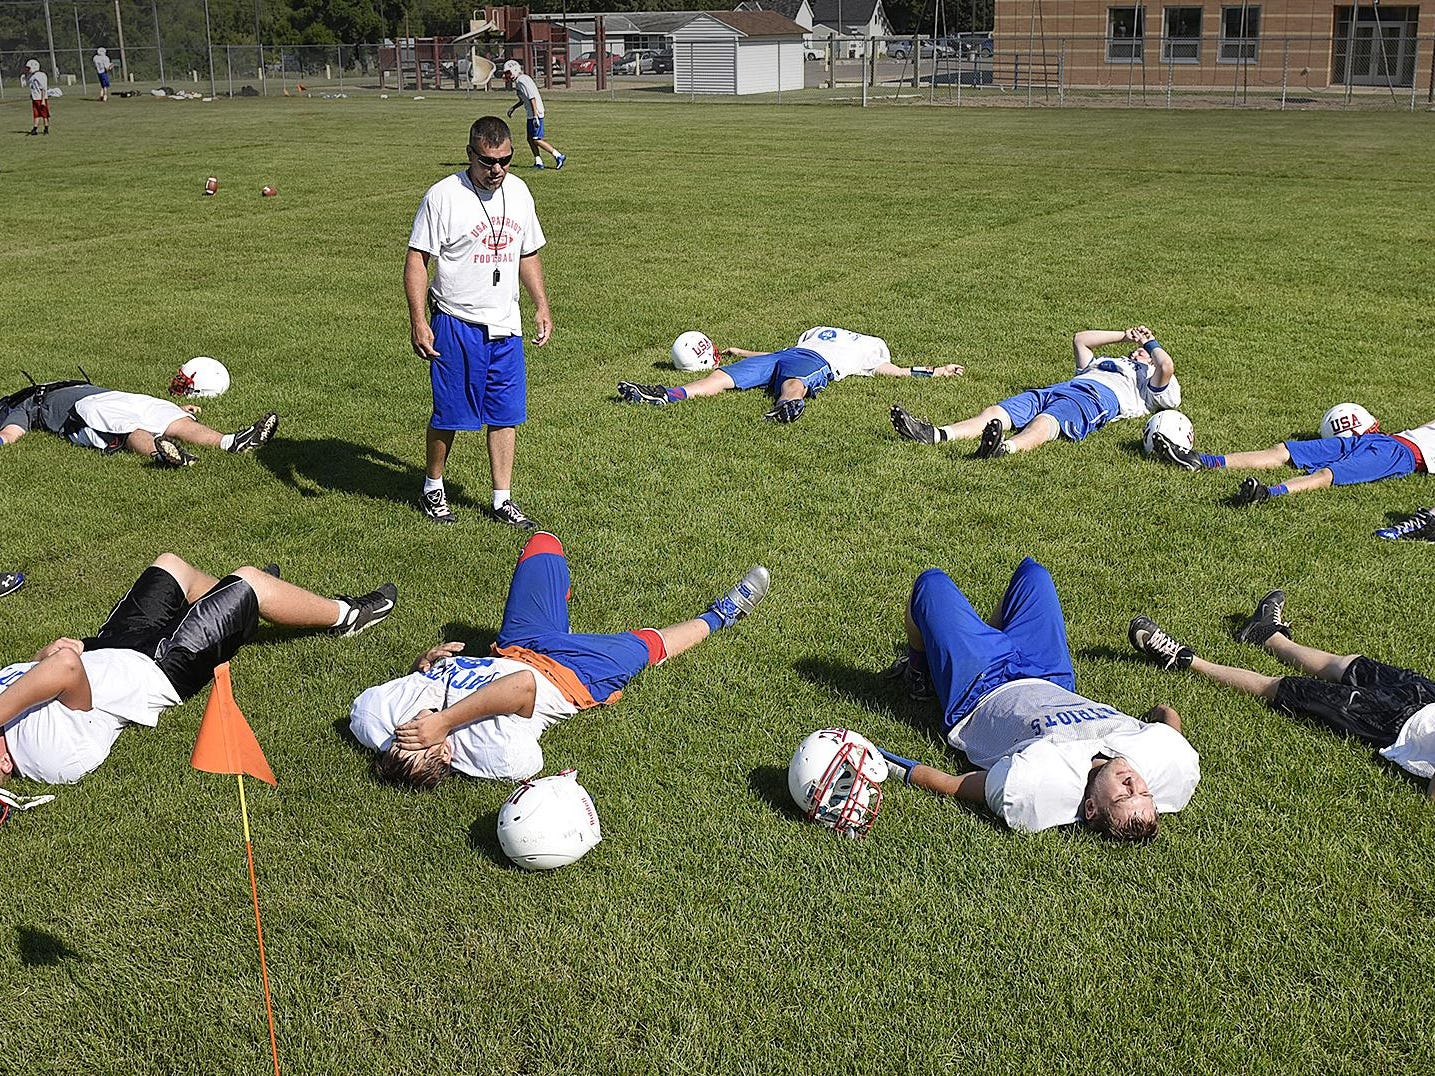 Coach Jay Loven talks to his players while giving them a break during practice Aug. 11 in Swanville.